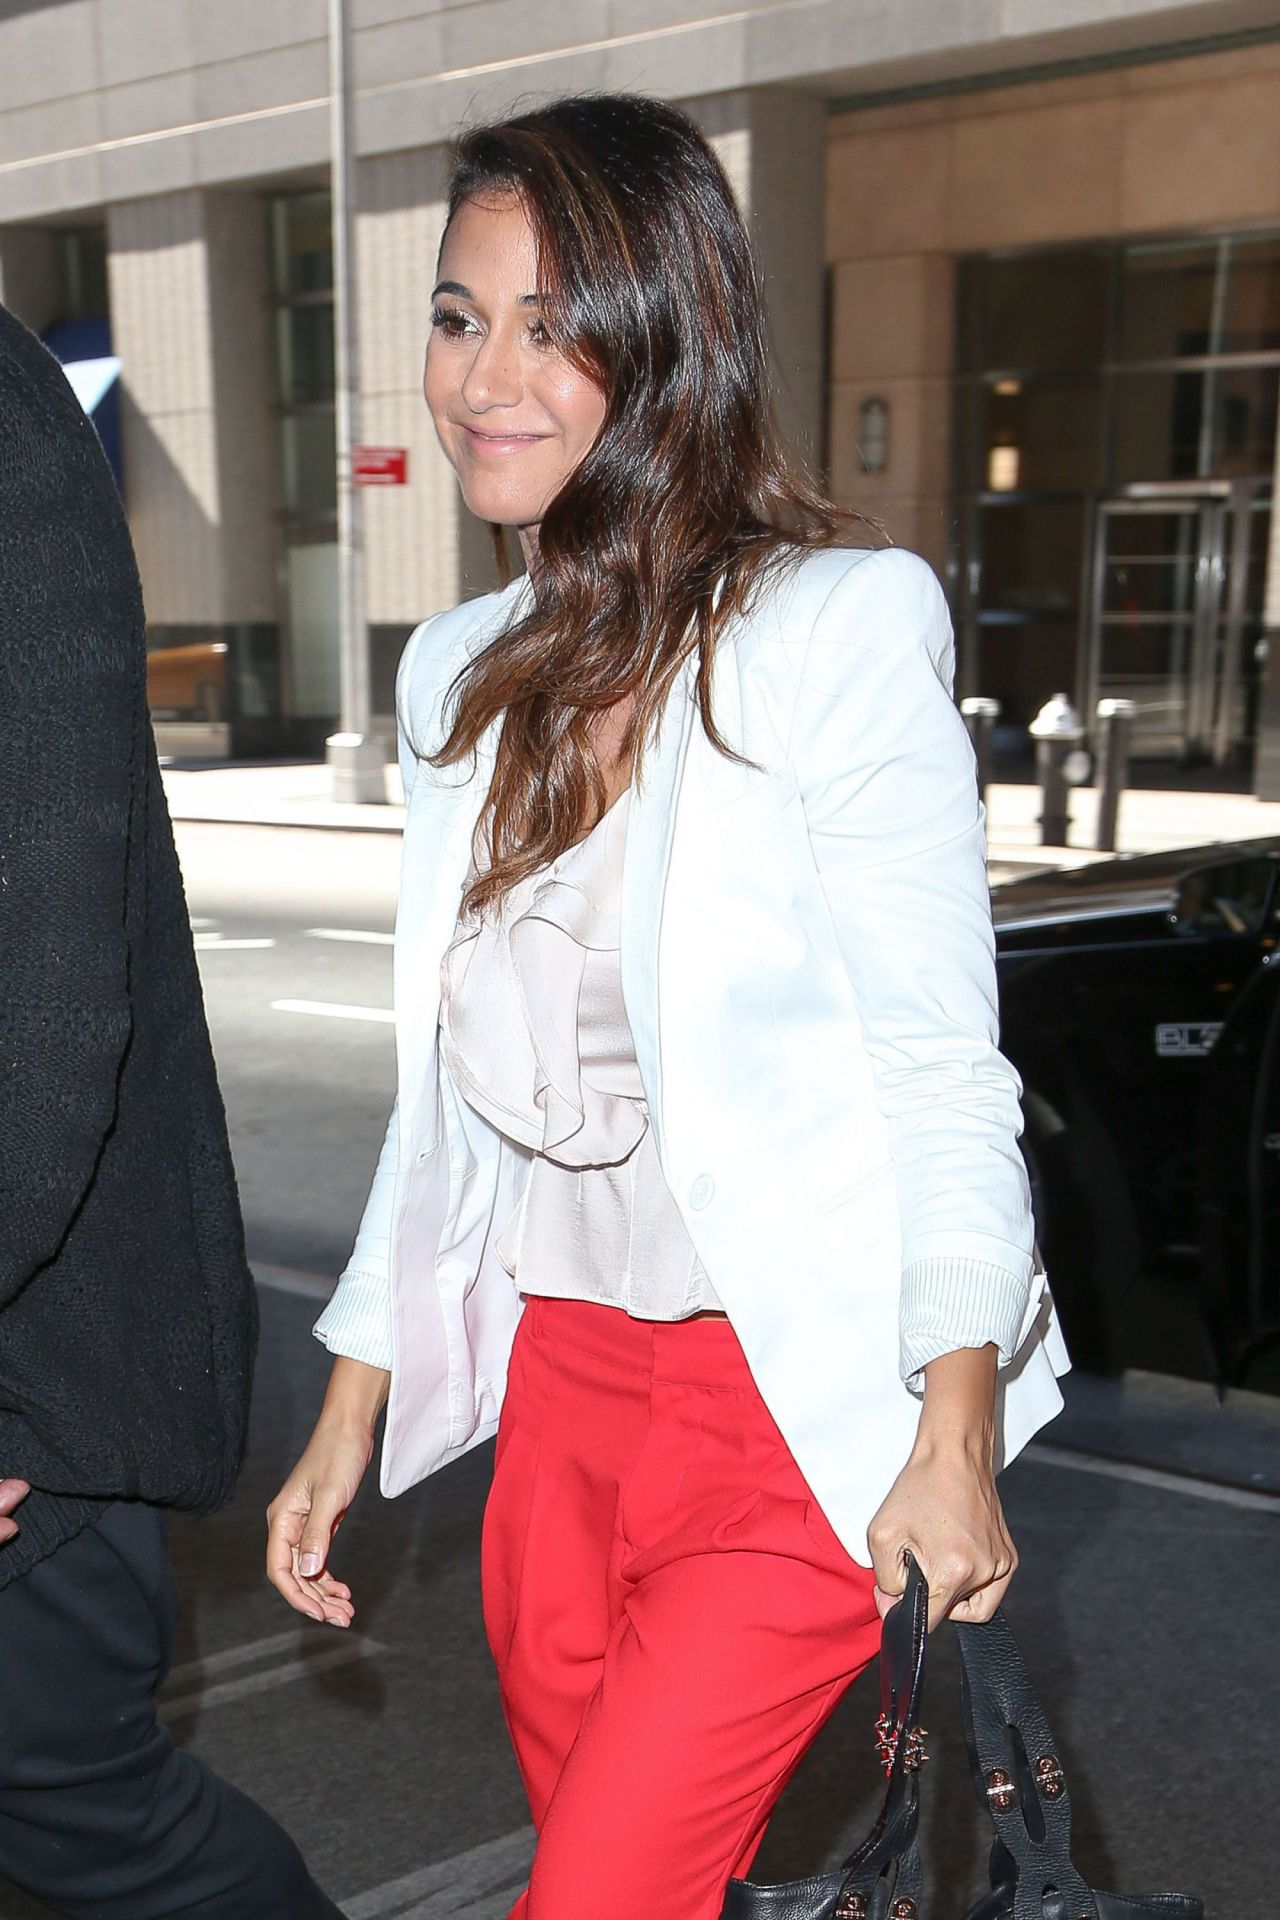 Emmanuelle Chriqui Style - Arriving at Her Hotel in New York City - August 2014